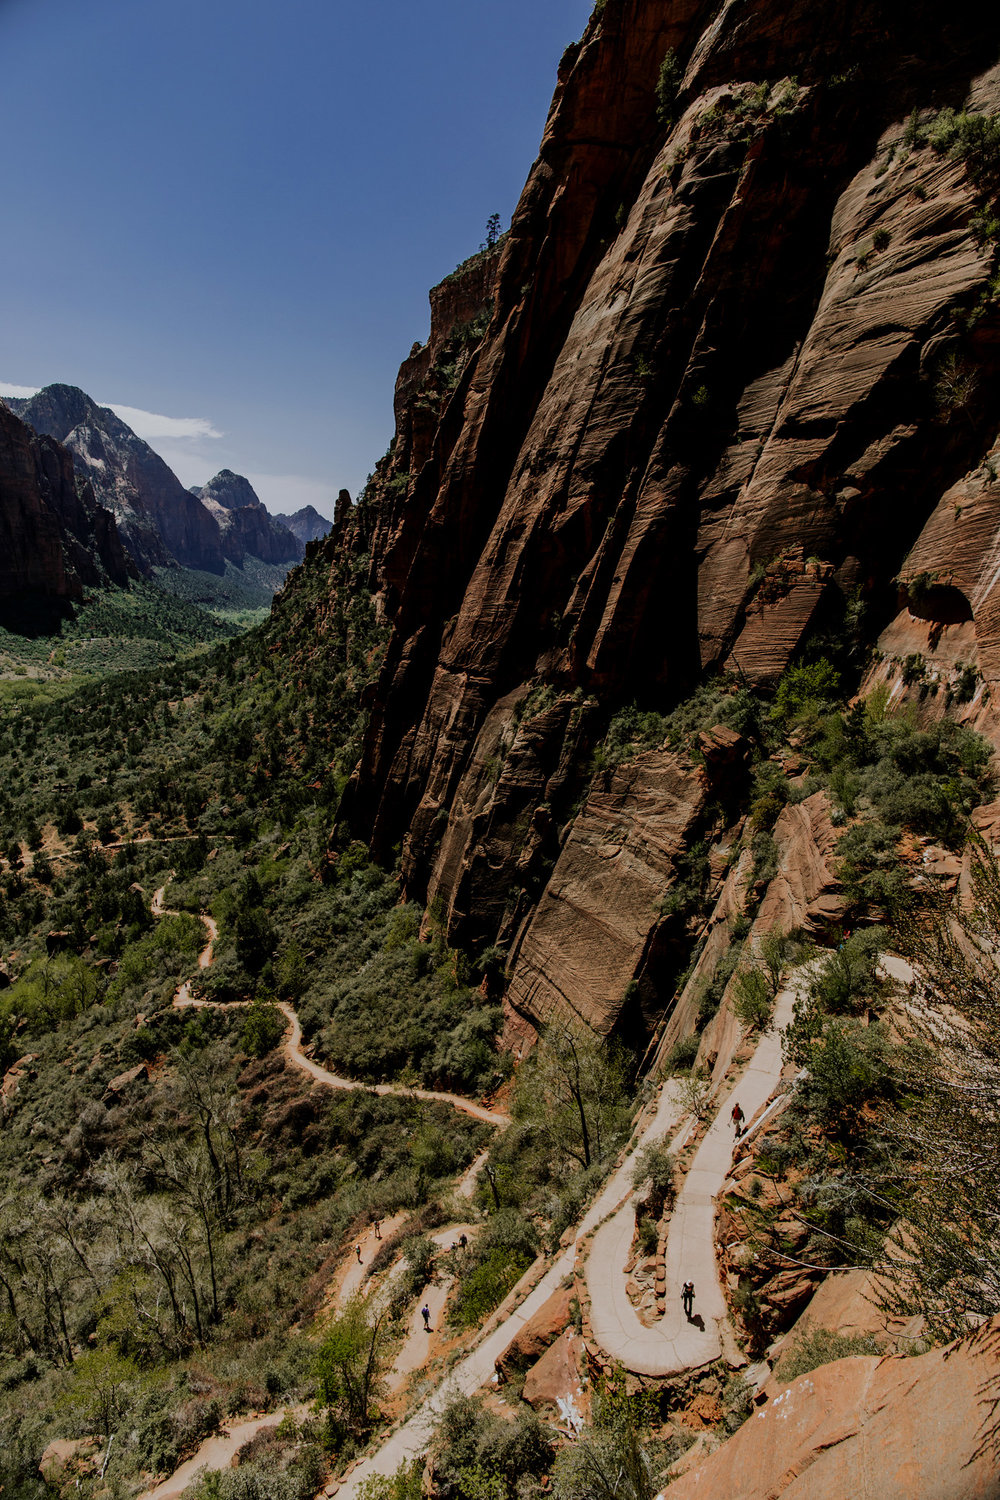 zion-national-park-landscape-photography-4